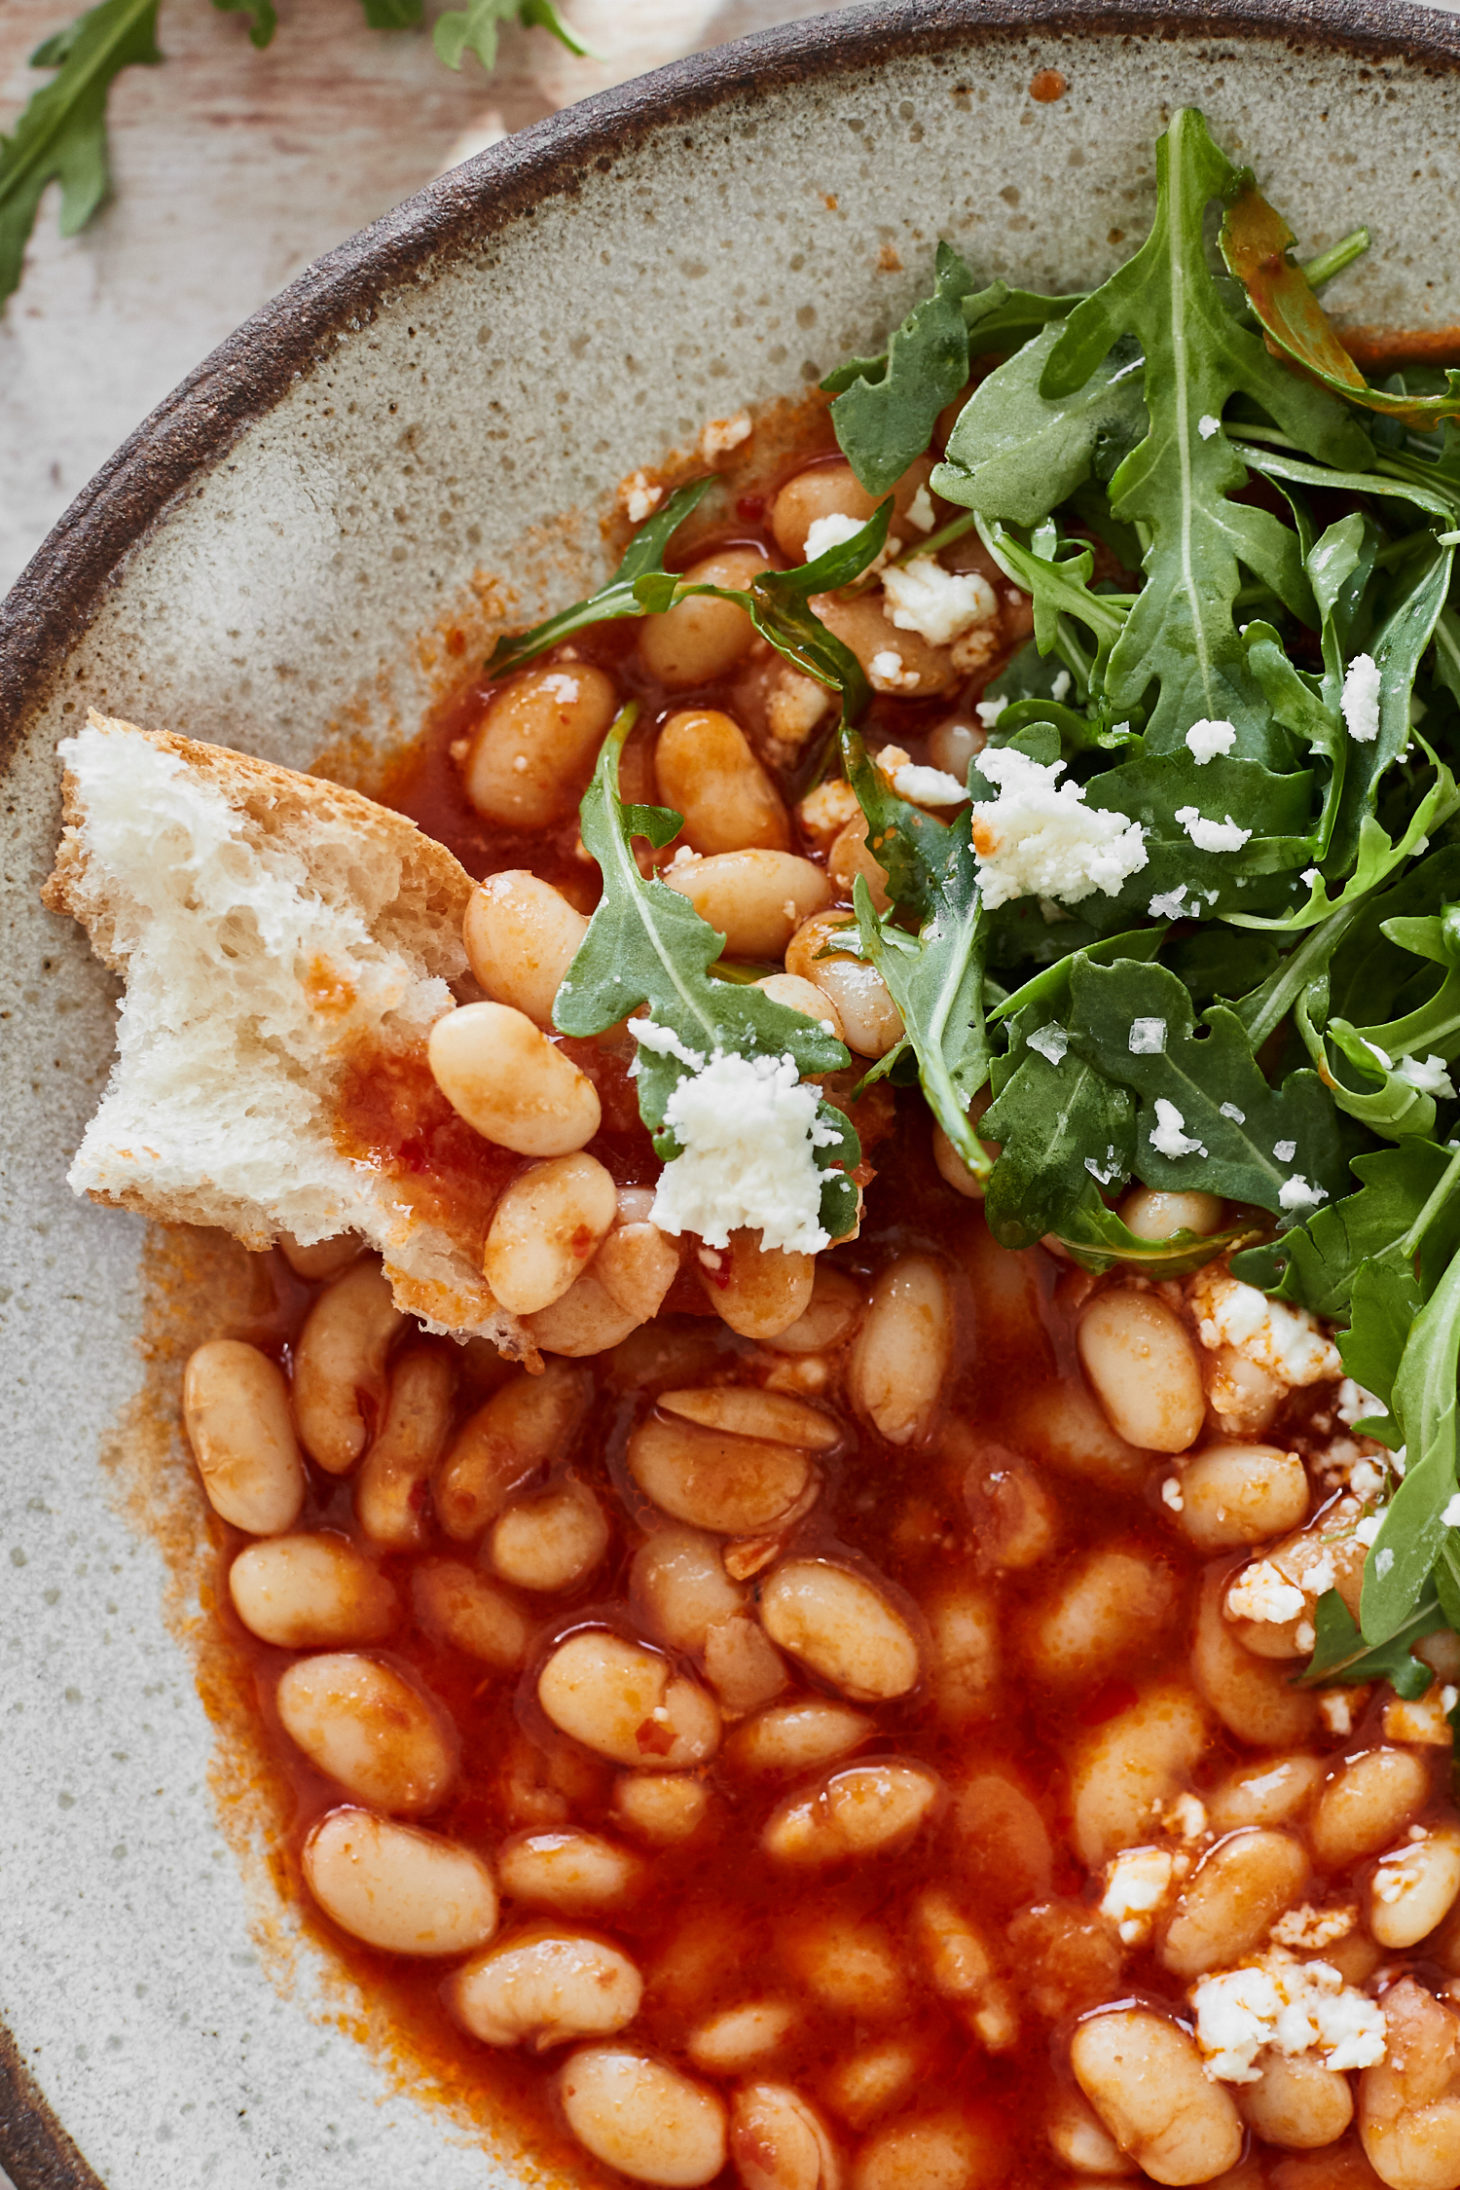 Close-up image of a piece of bread topped with beans in a red broth.